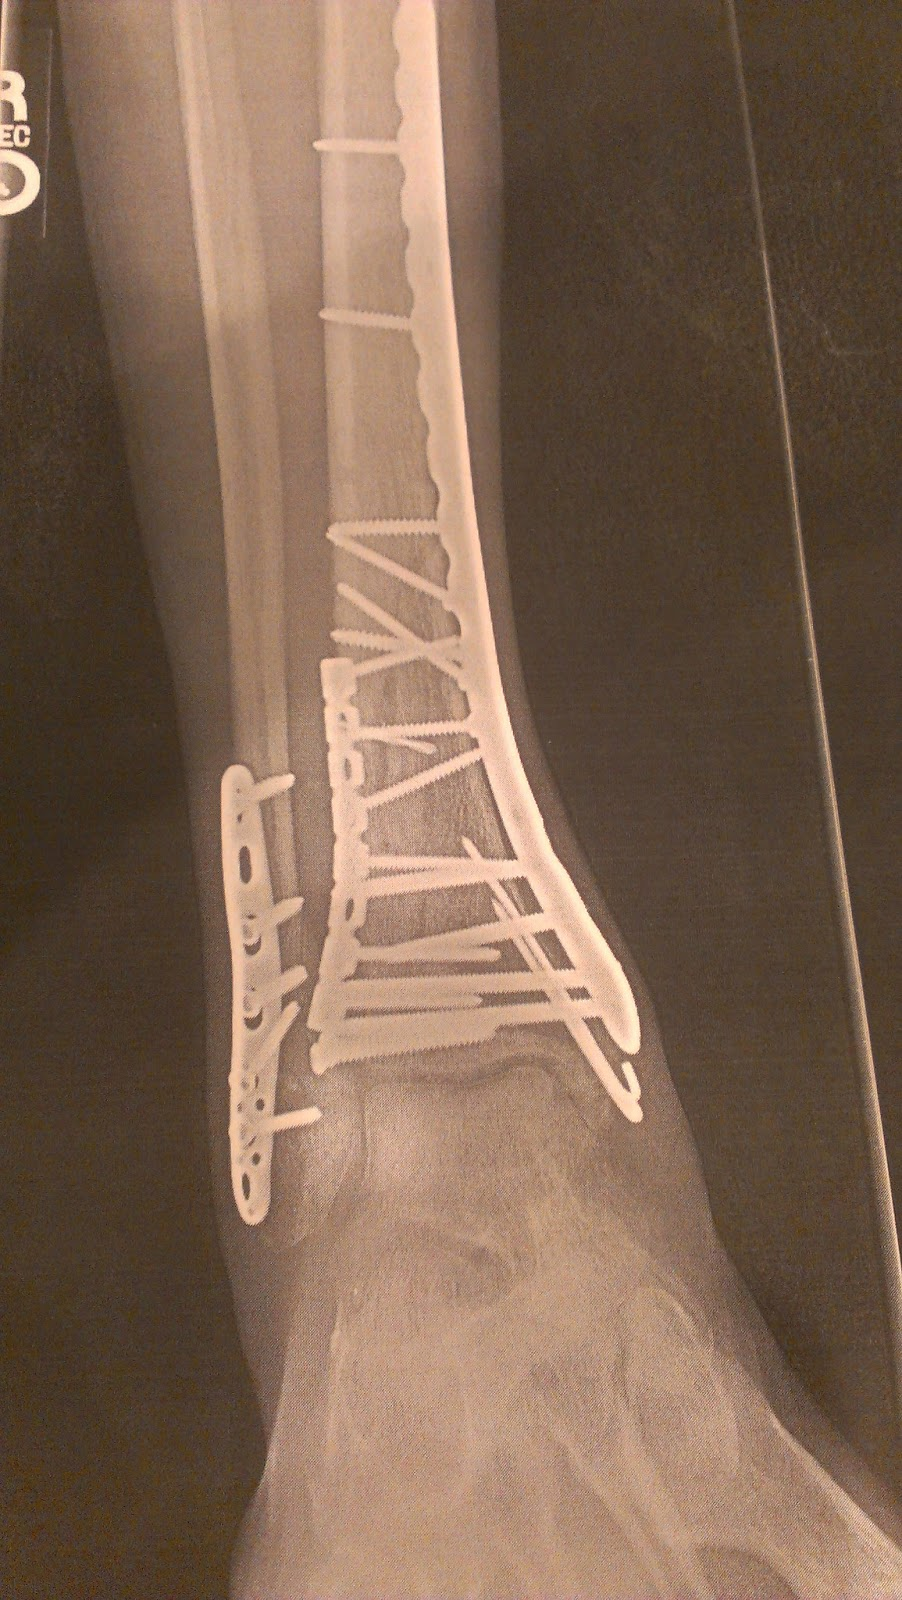 from a broken tibia, fibula, talus, and shattered ankle bone